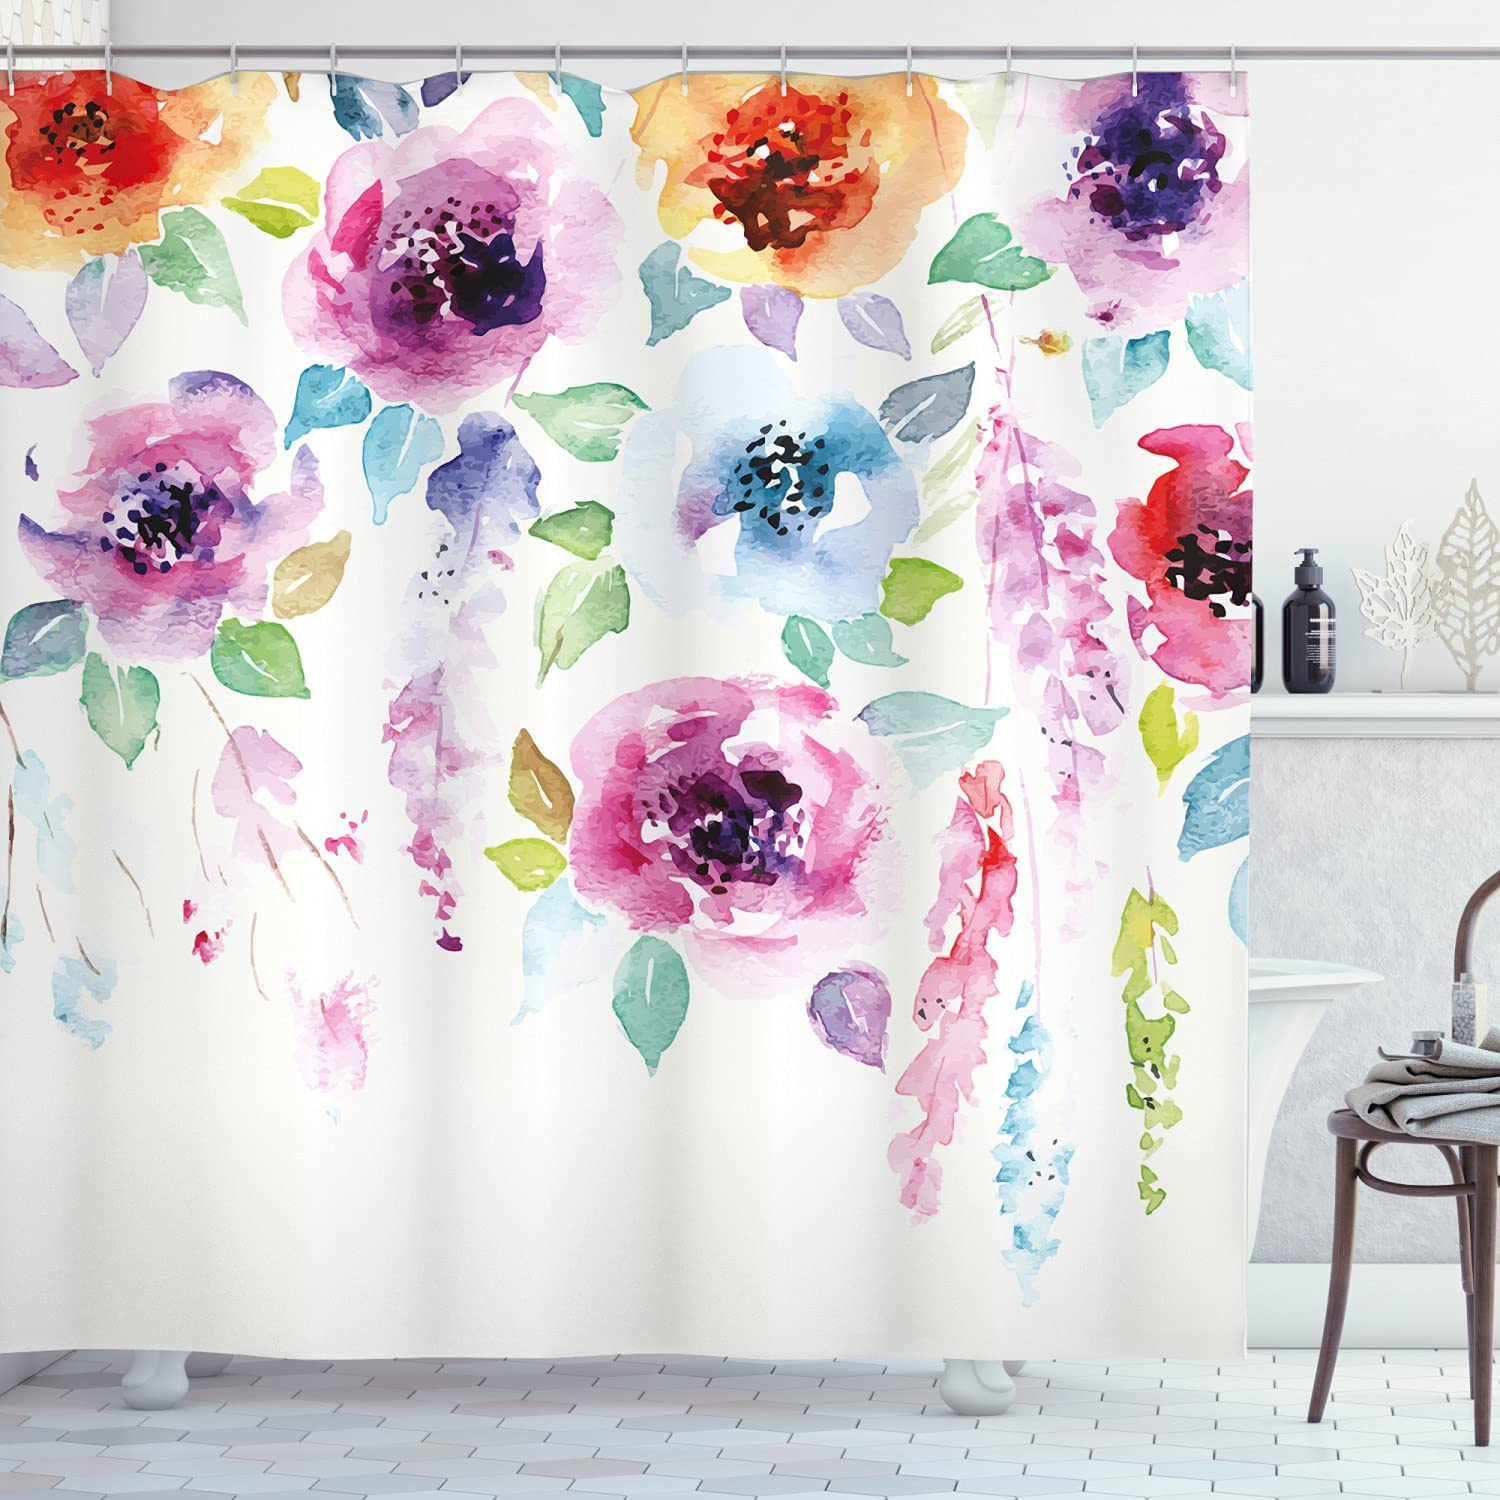 Ambesonne Abstract Shower Curtain, Modern Design of Watercolor S